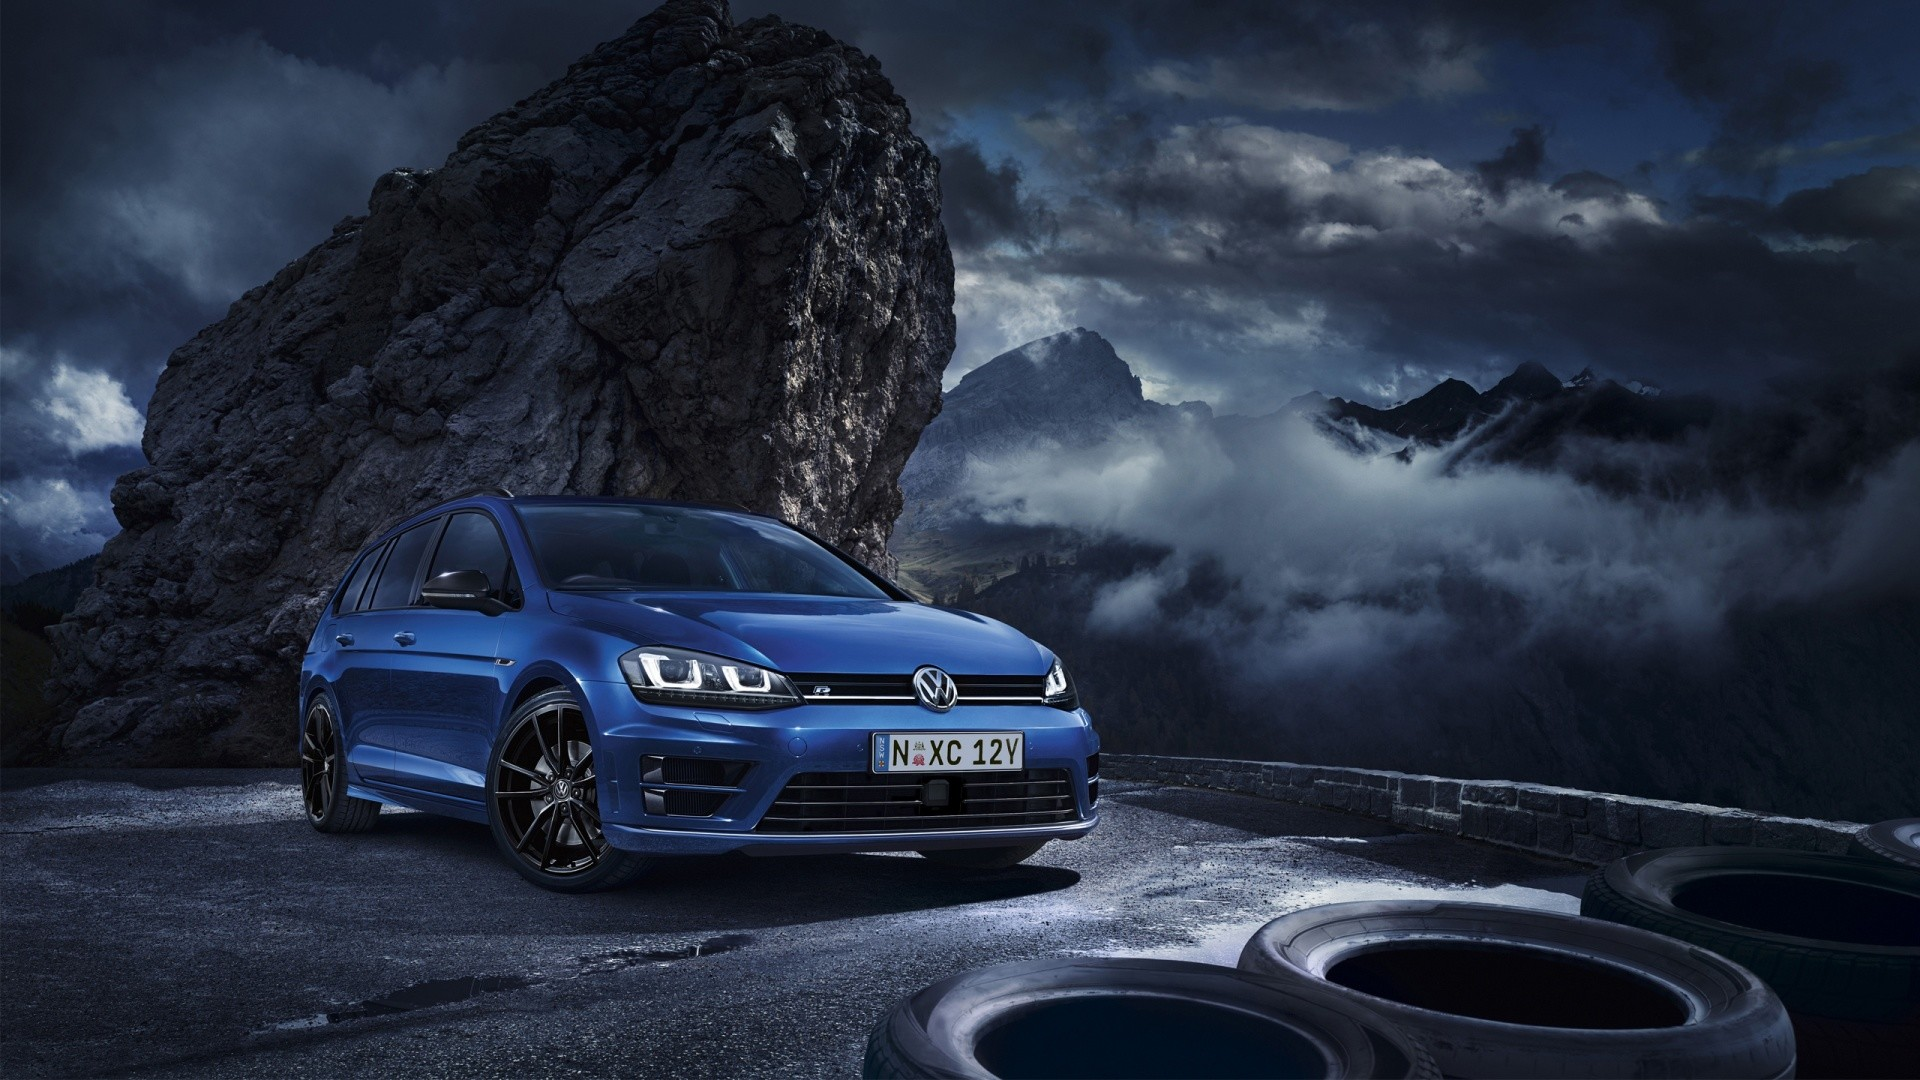 VW Golf R Wallpaper (60+ Images